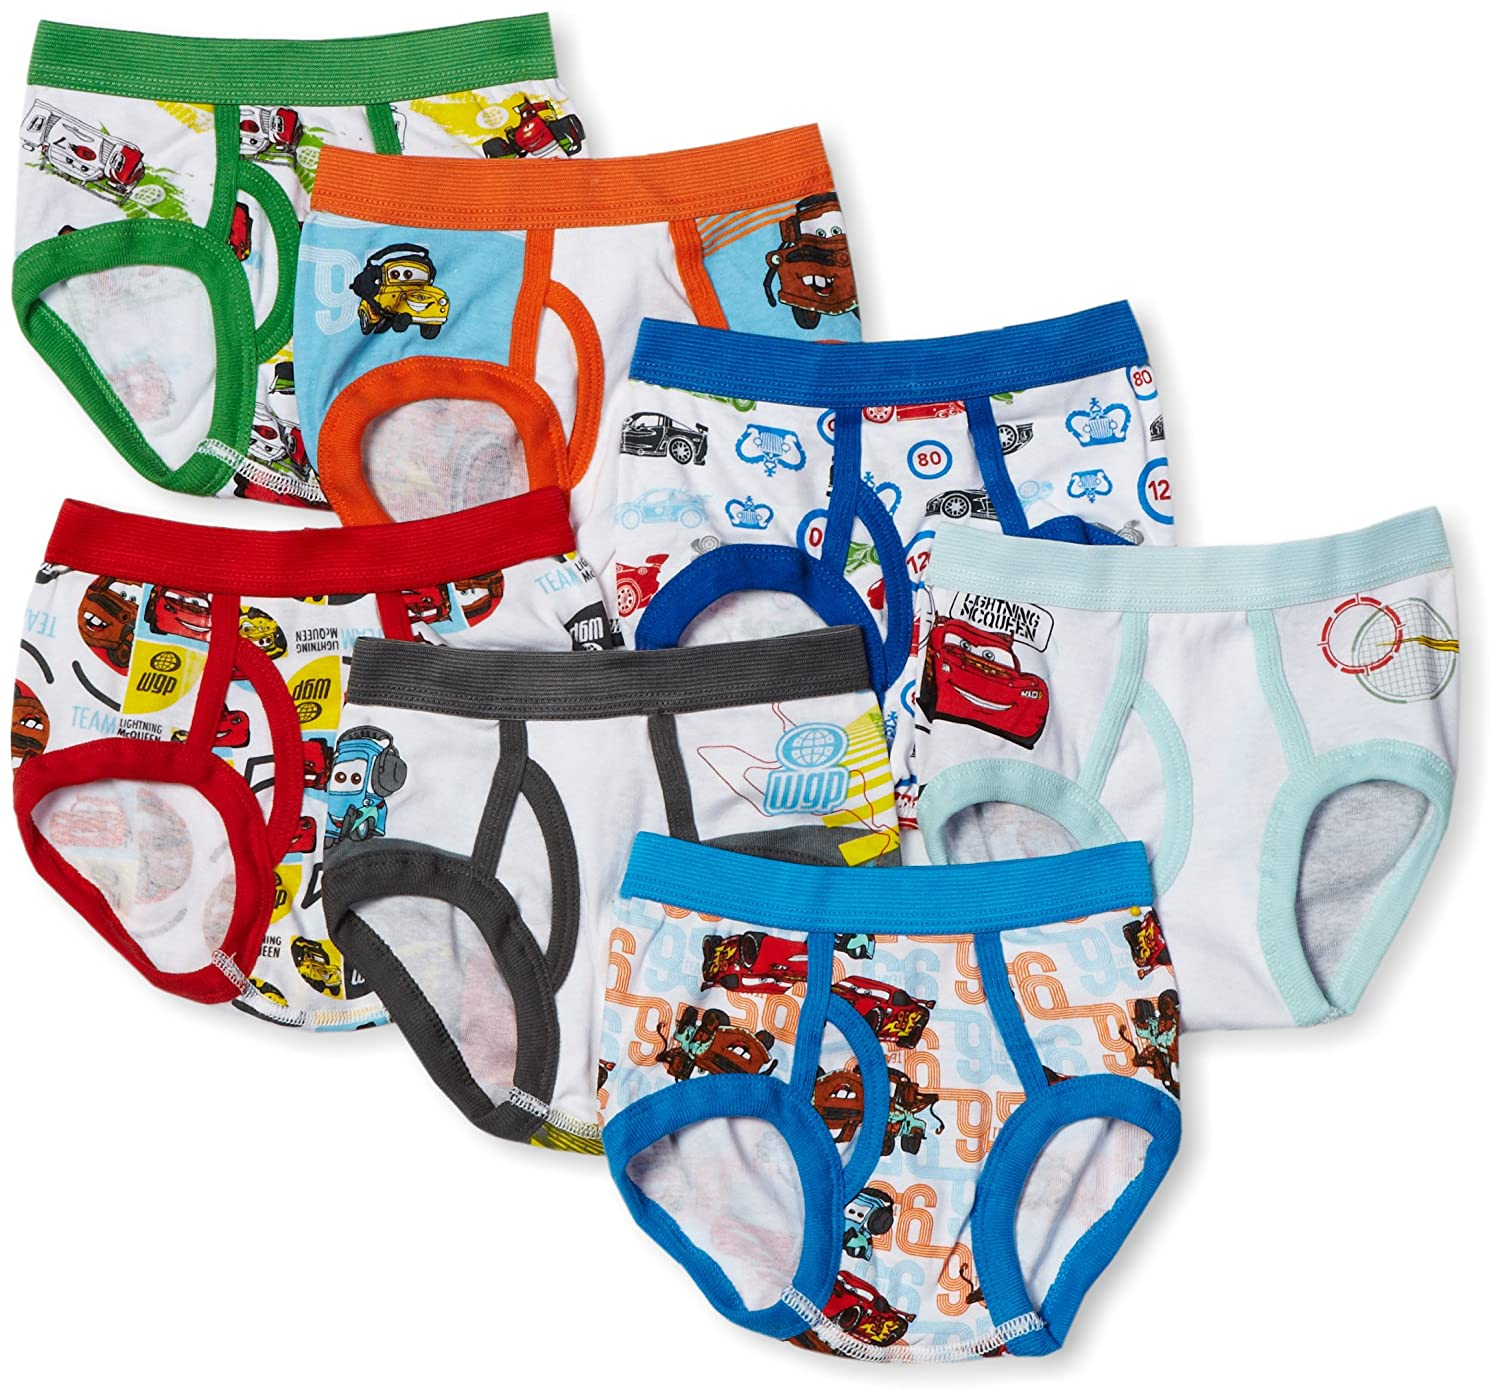 Amazon.com: Boys underwear, Boys boxers, Boys briefs, Boys boxer ...